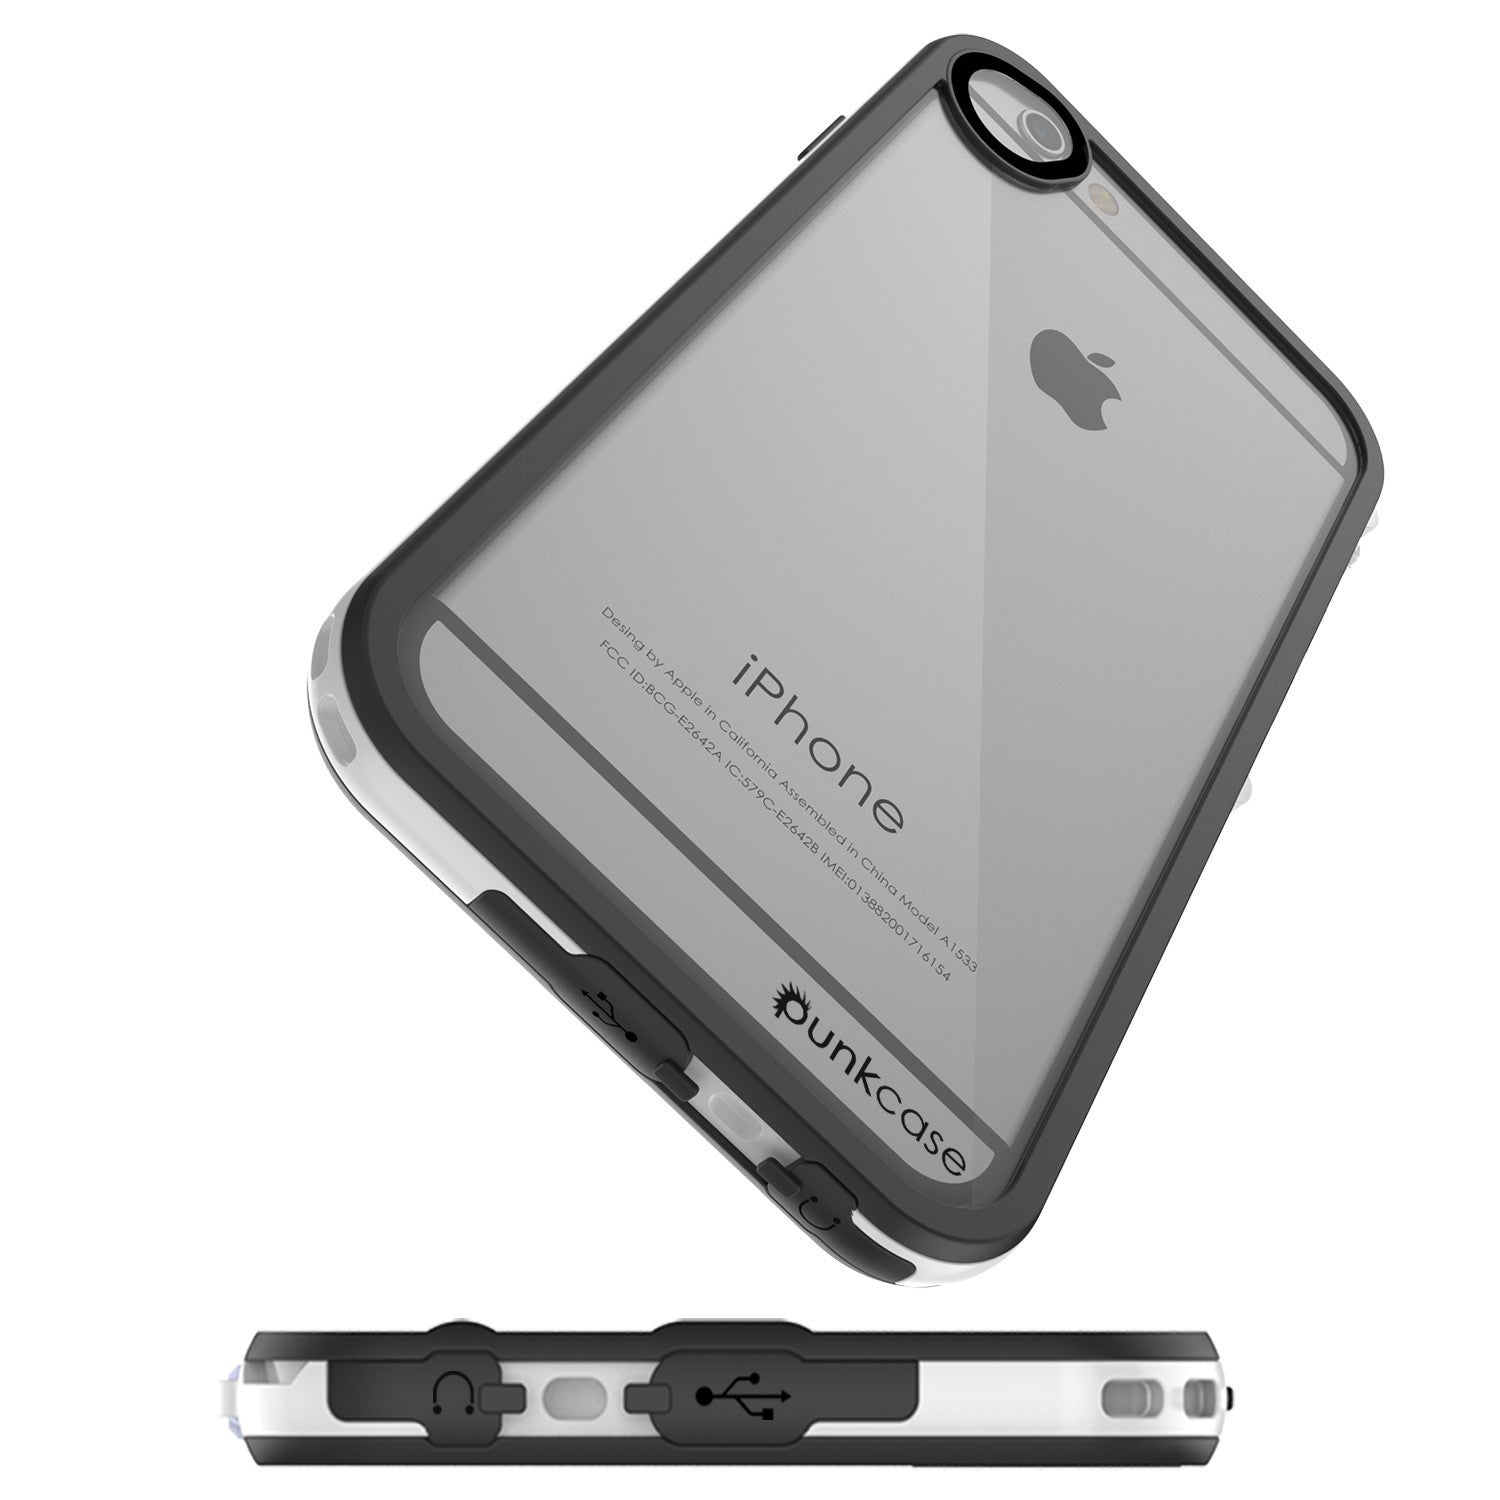 Apple iPhone 7/6s/6 Waterproof Case, PUNKcase CRYSTAL 2.0 White W/ Attached Screen Protector | Warranty